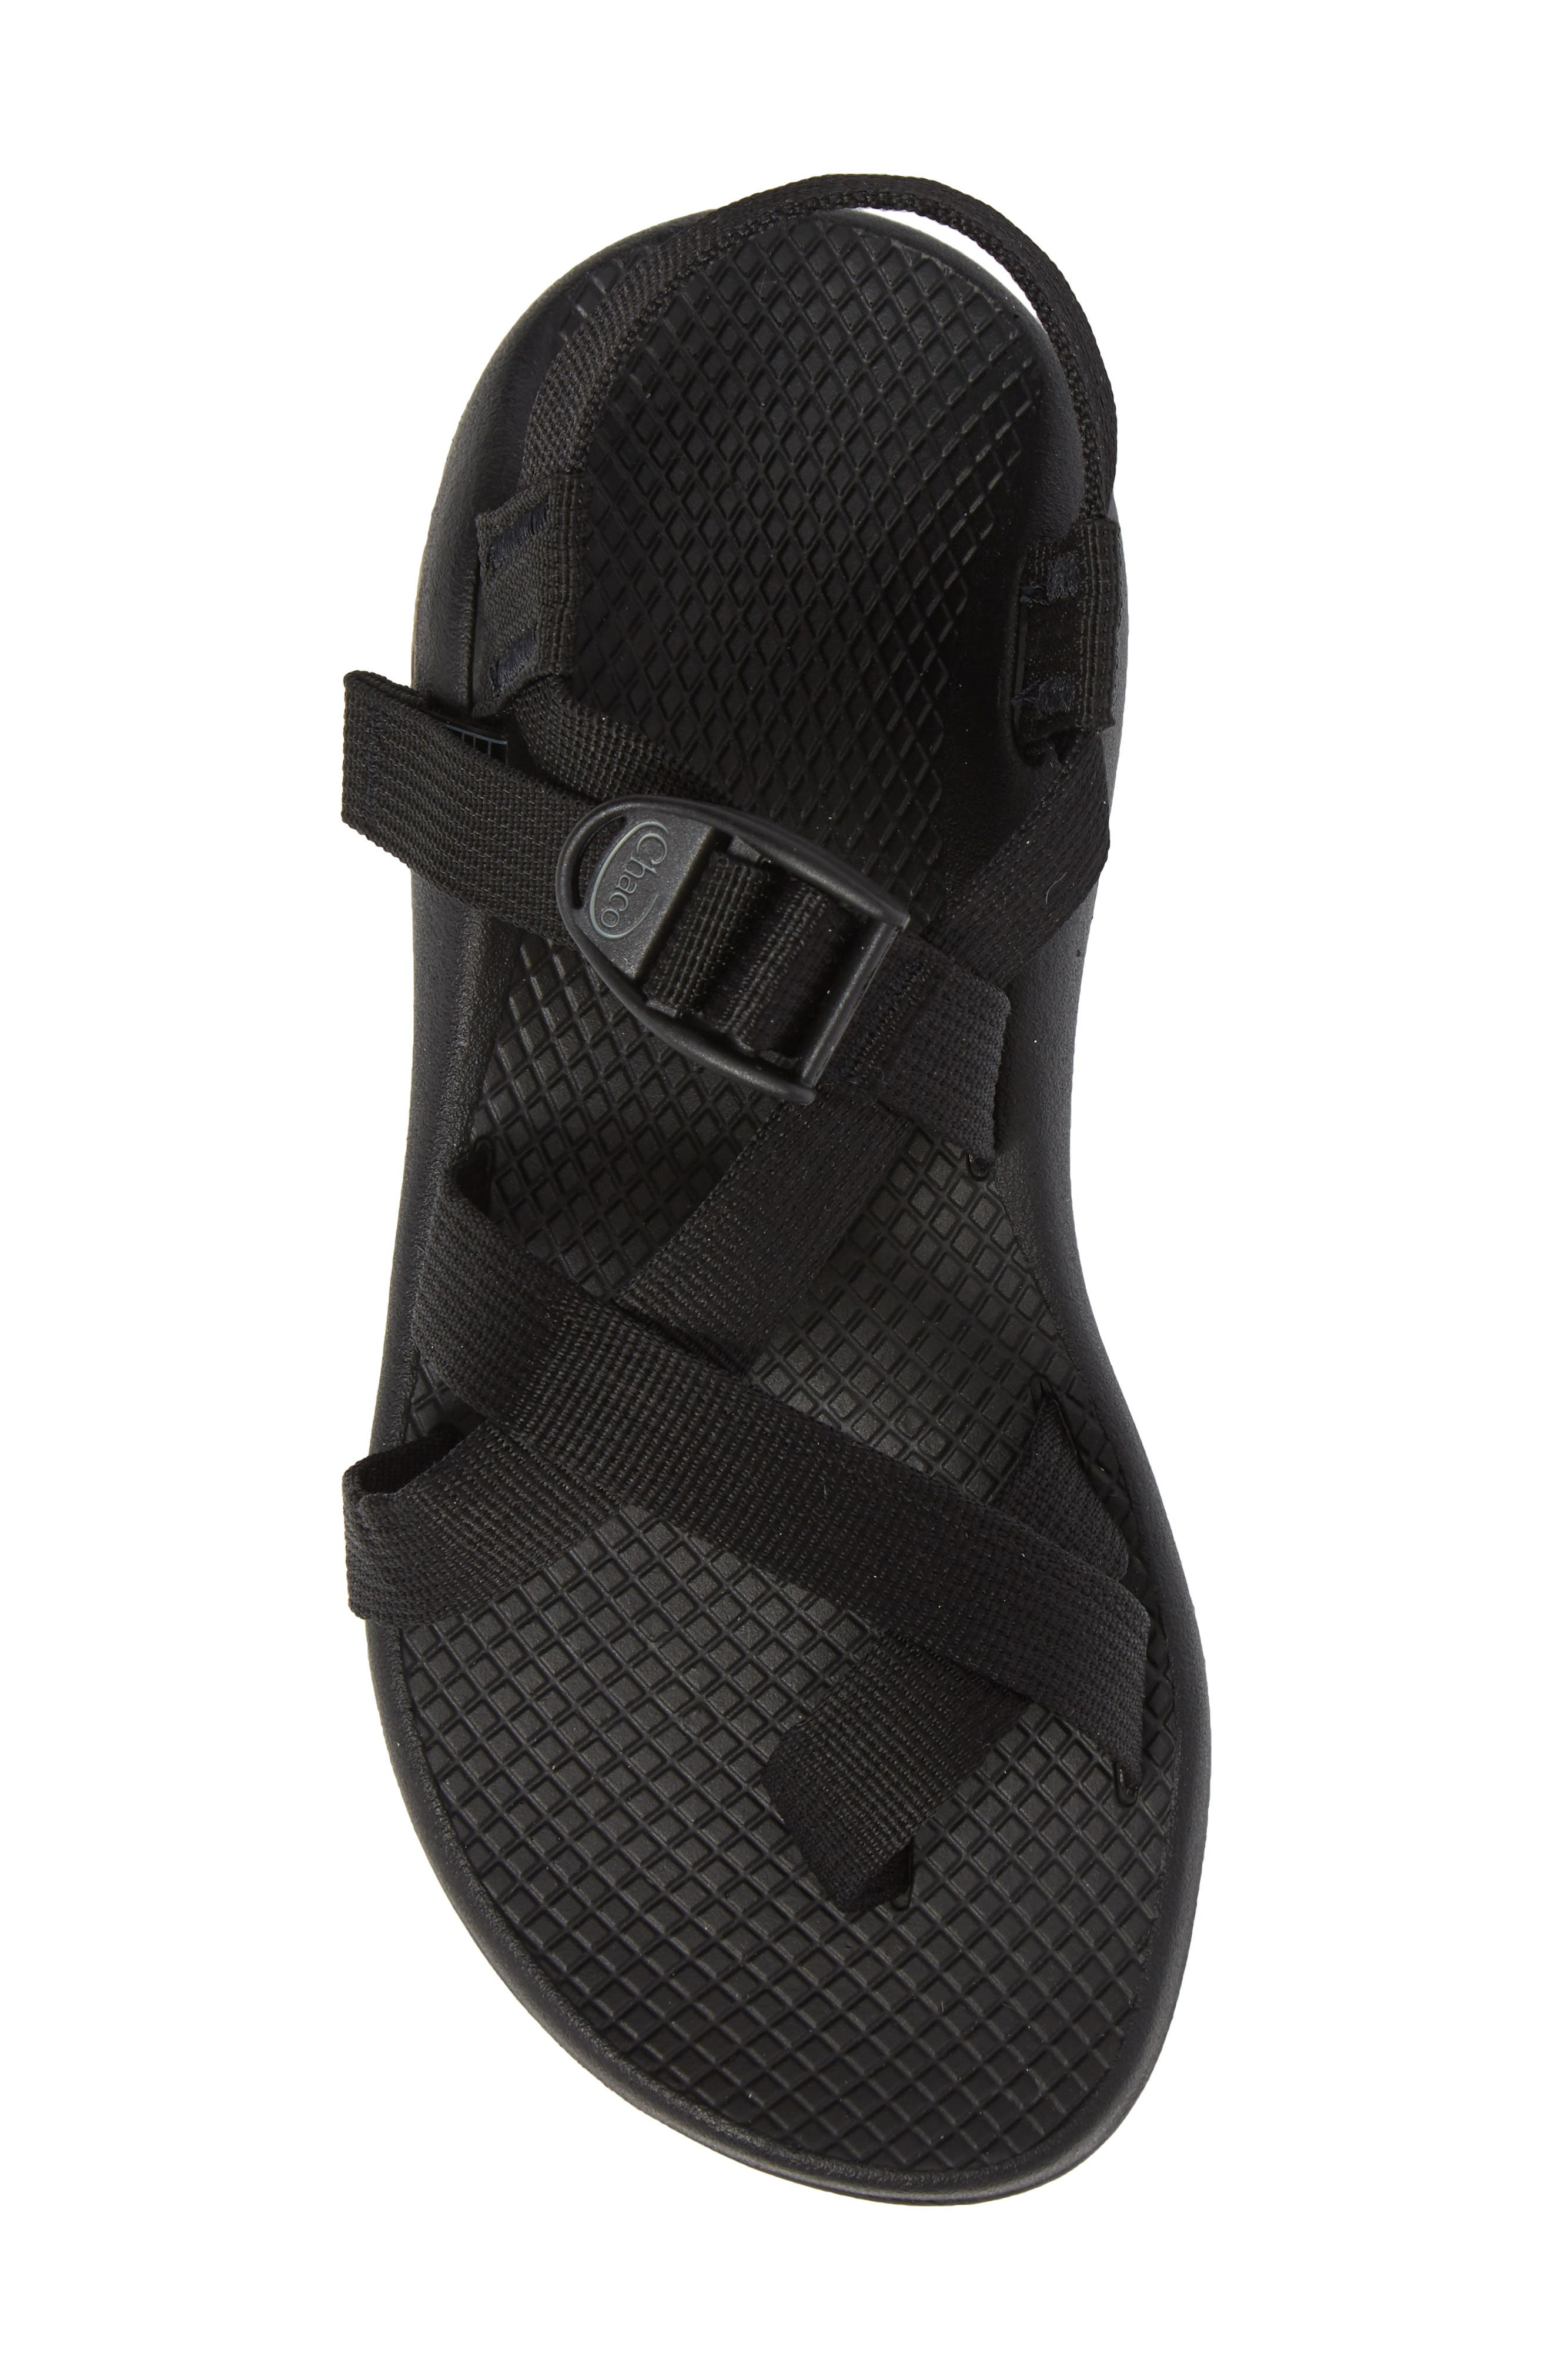 Z/2 Classic Sport Sandal,                             Alternate thumbnail 5, color,                             Black